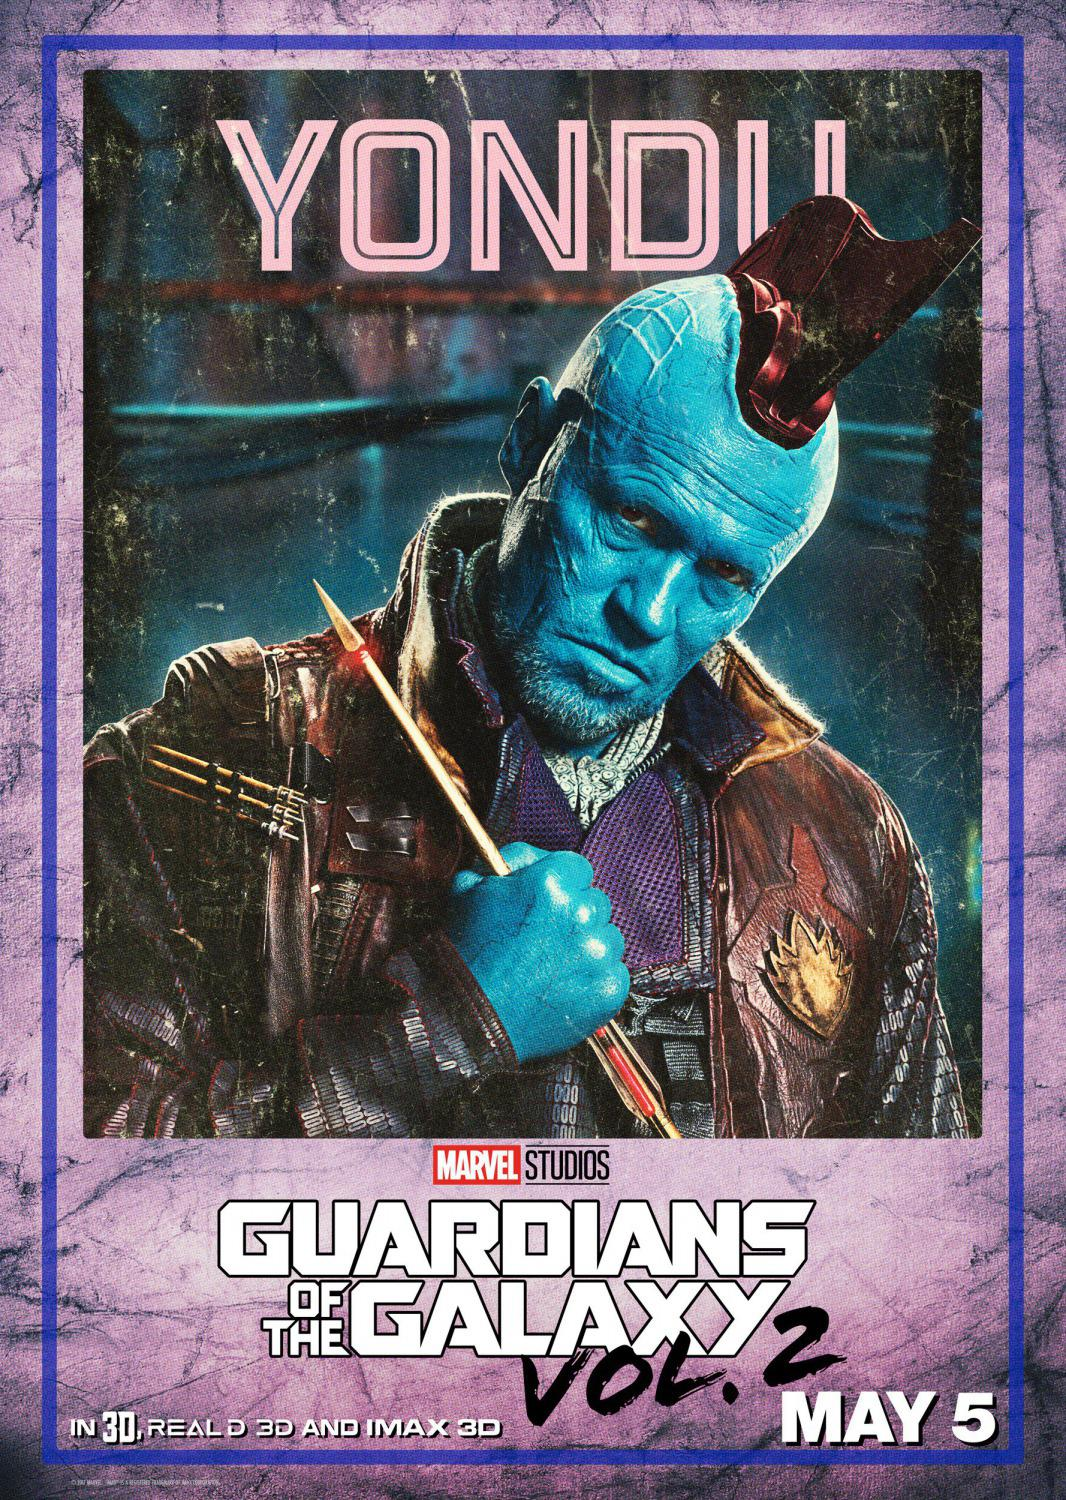 Guardians of the Galaxy vol two - Guardiani della Galassia 2 - Yondu